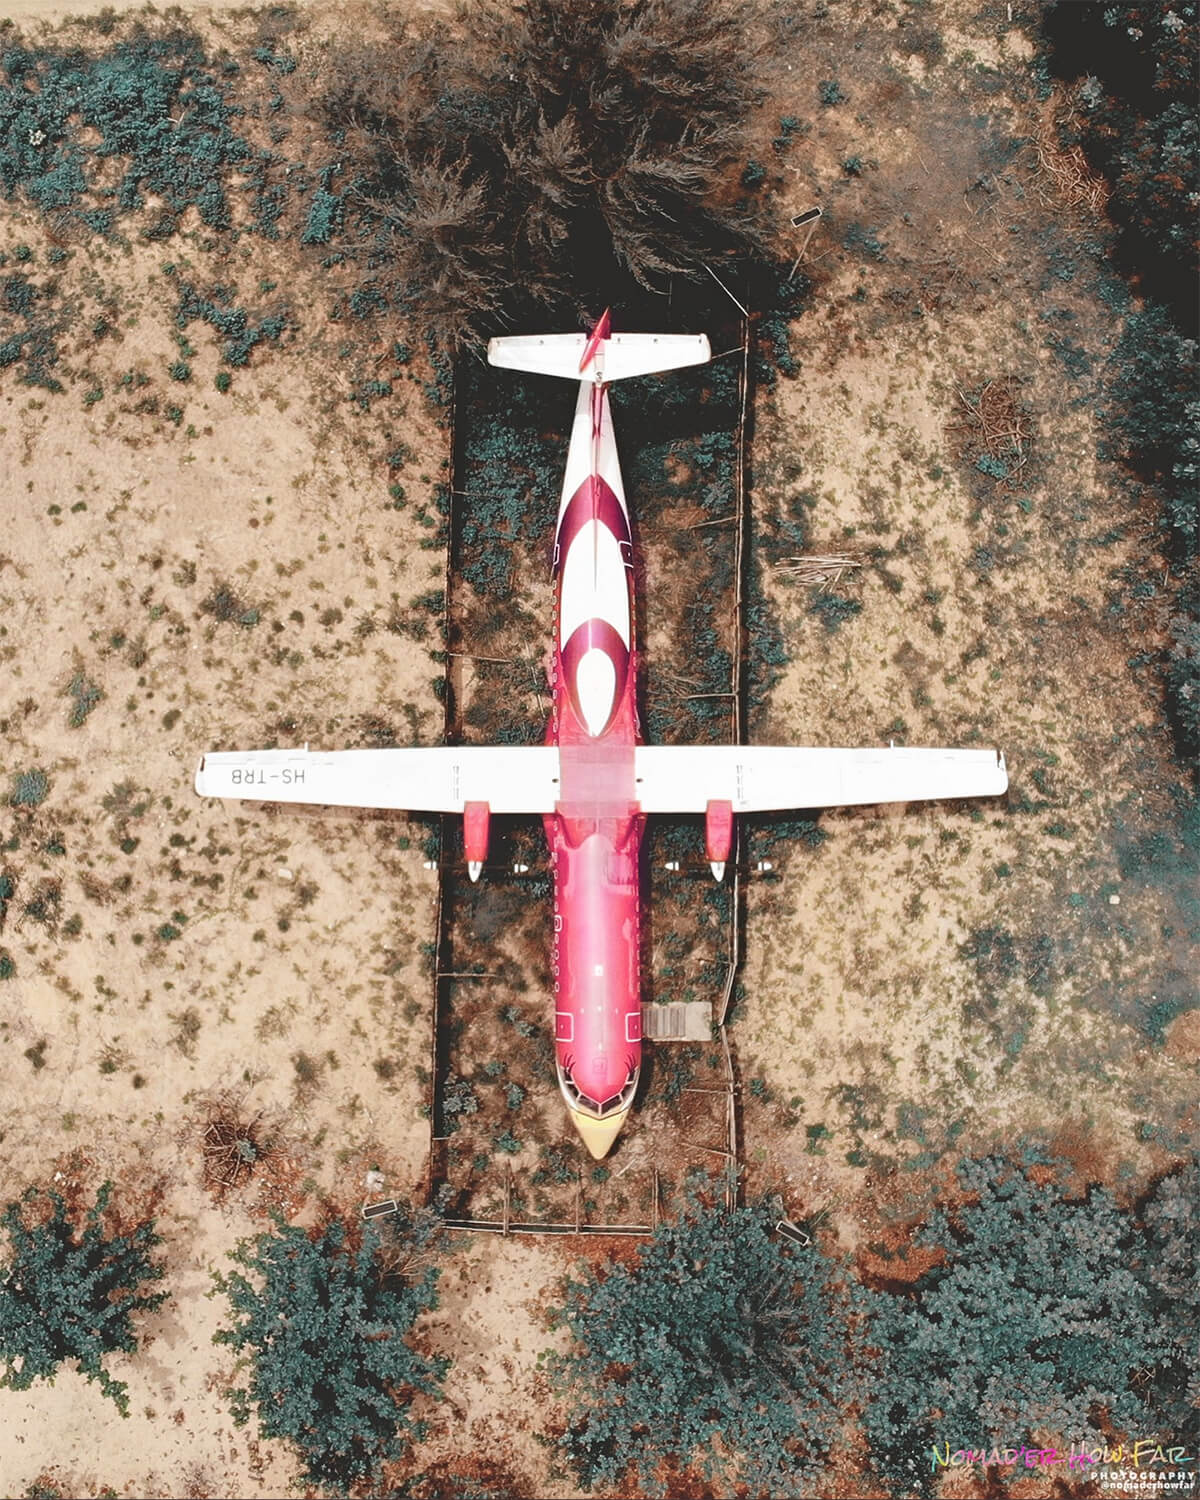 Aerial view of HS-TRB, the abandoned airplane on Mae Rumphueng Beach in Rayong, Thailand